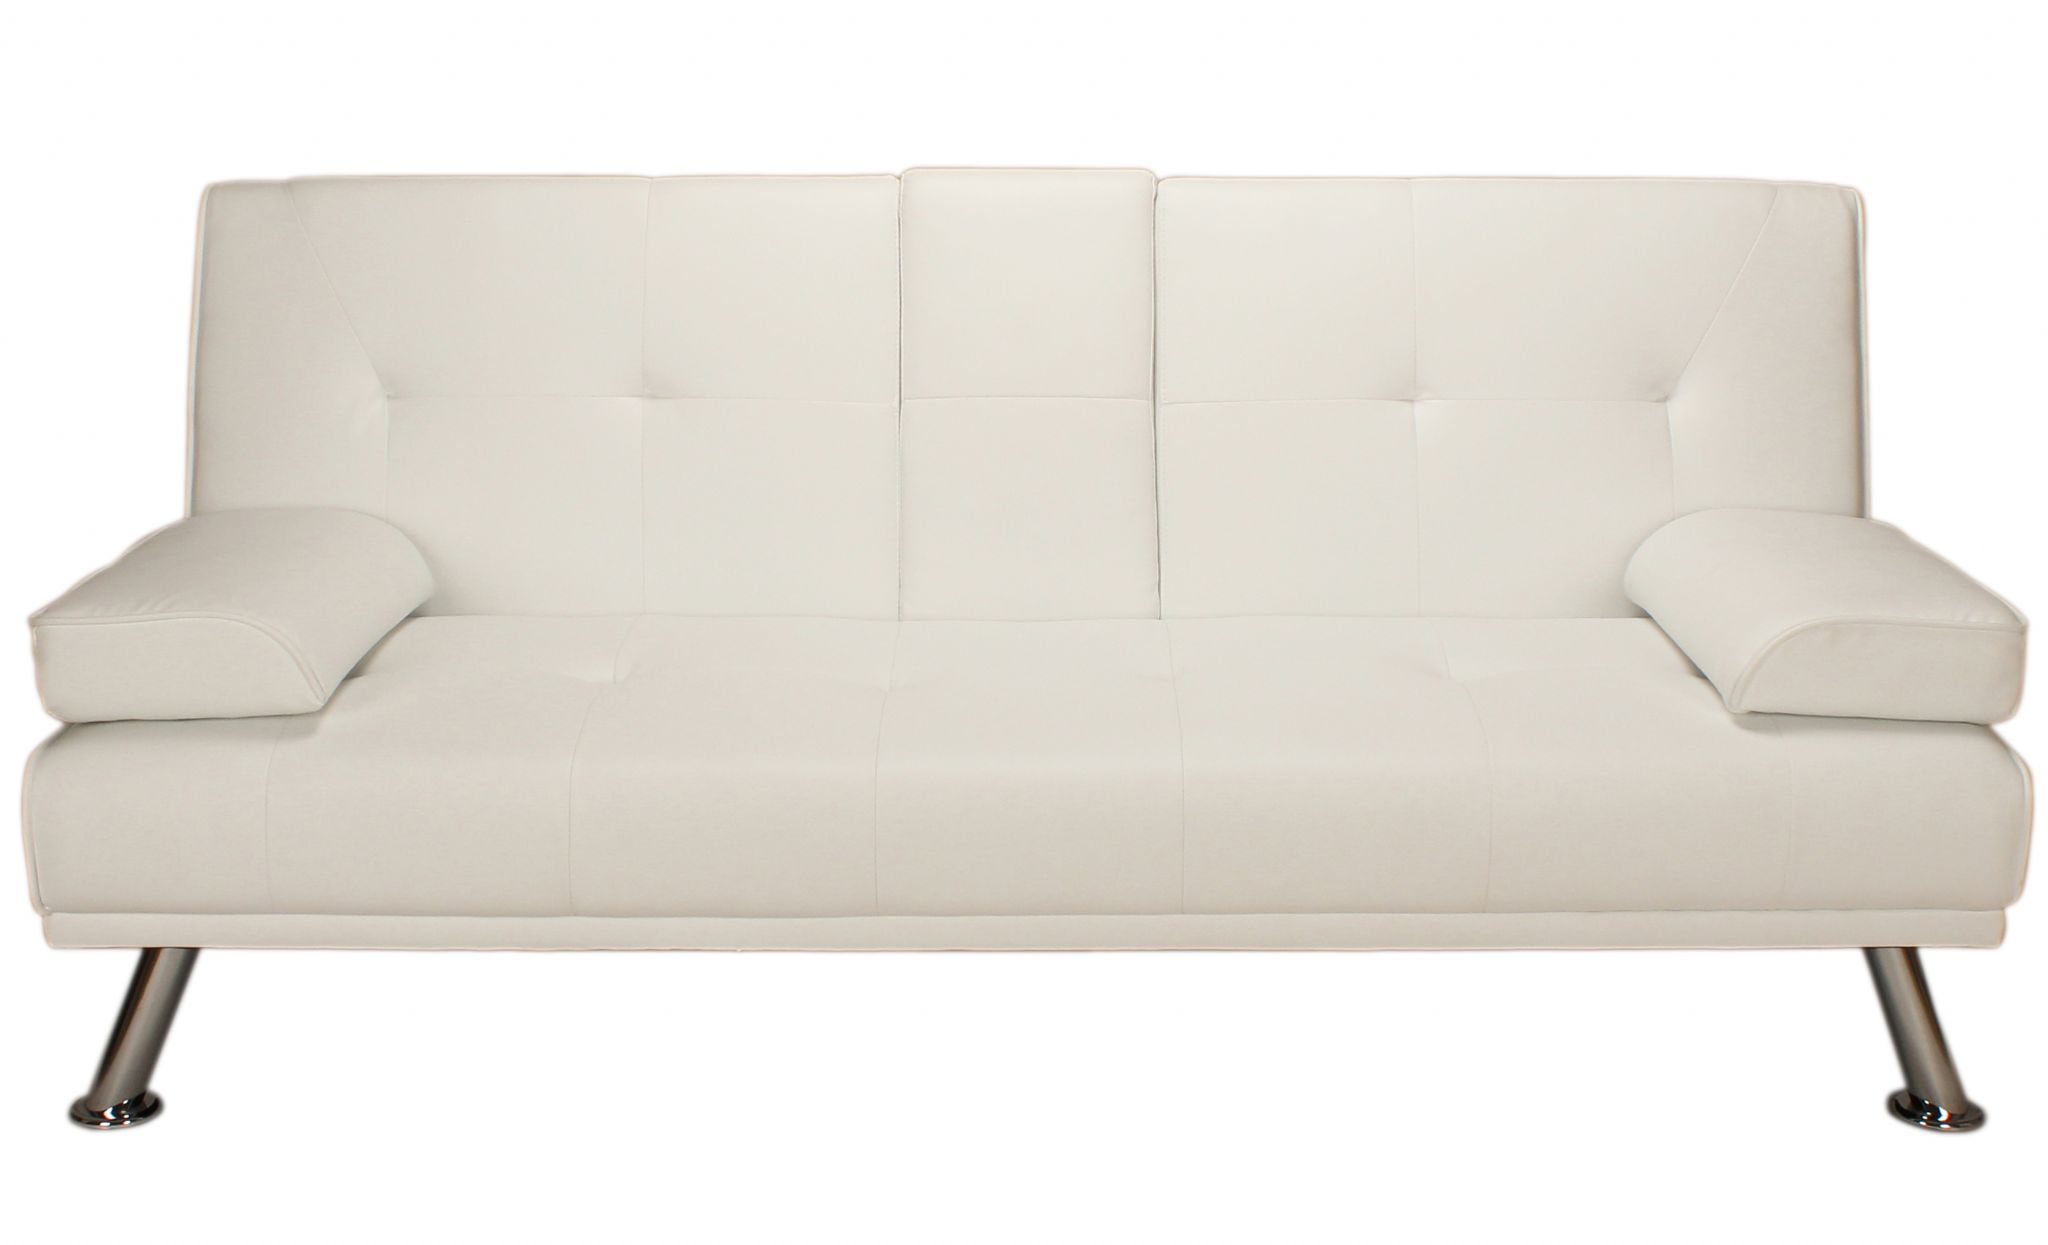 white como click clack sofa bed [2] 1317 p